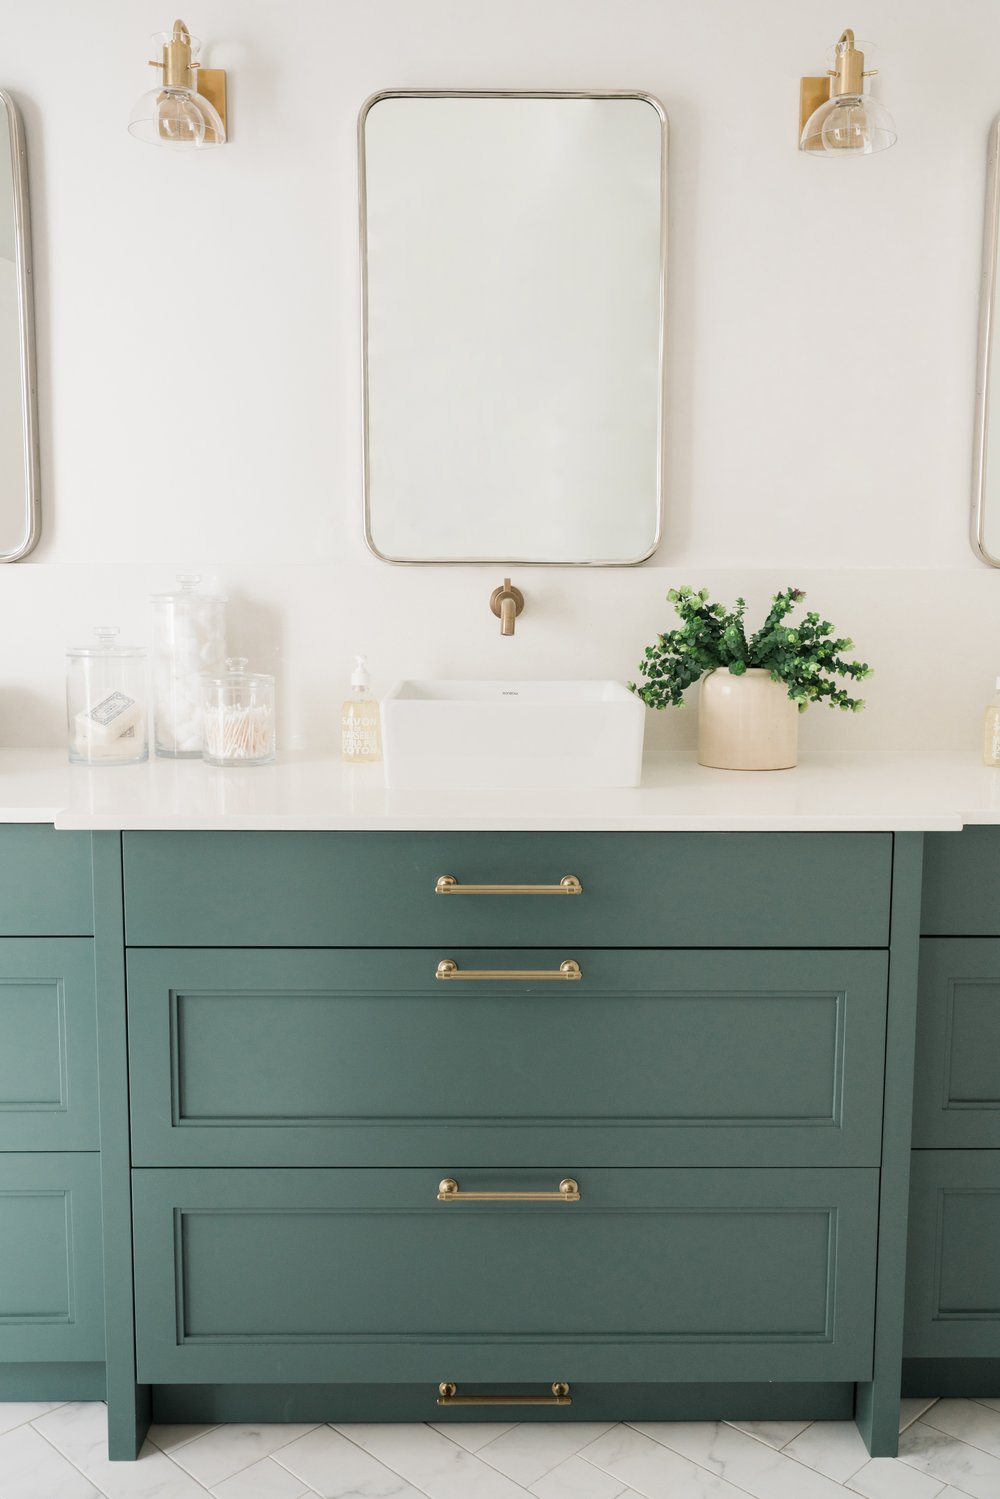 House of Jade Interiors | Travis J Photography | Riley Sconces by Mitzi